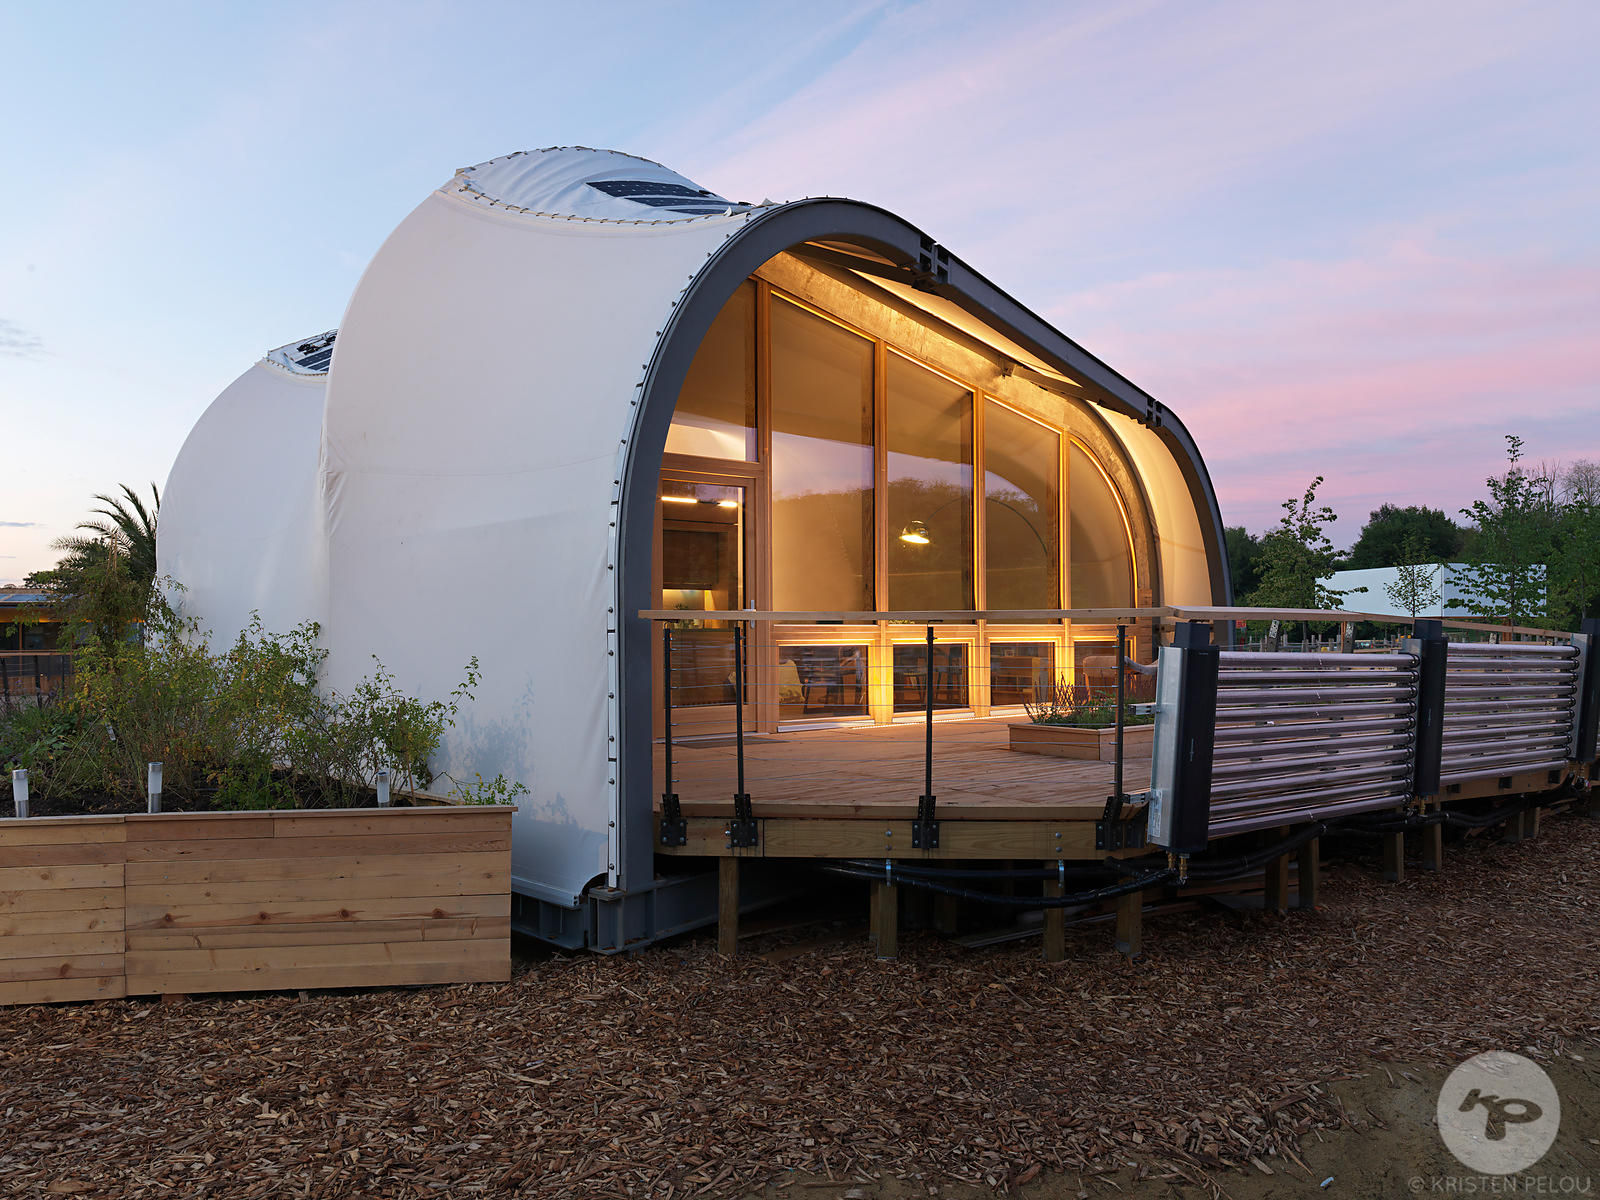 Architecture Photographer Paris - SOLAR DECATHLON 2014 VERSAILLES. Photo ©Kristen Pelou